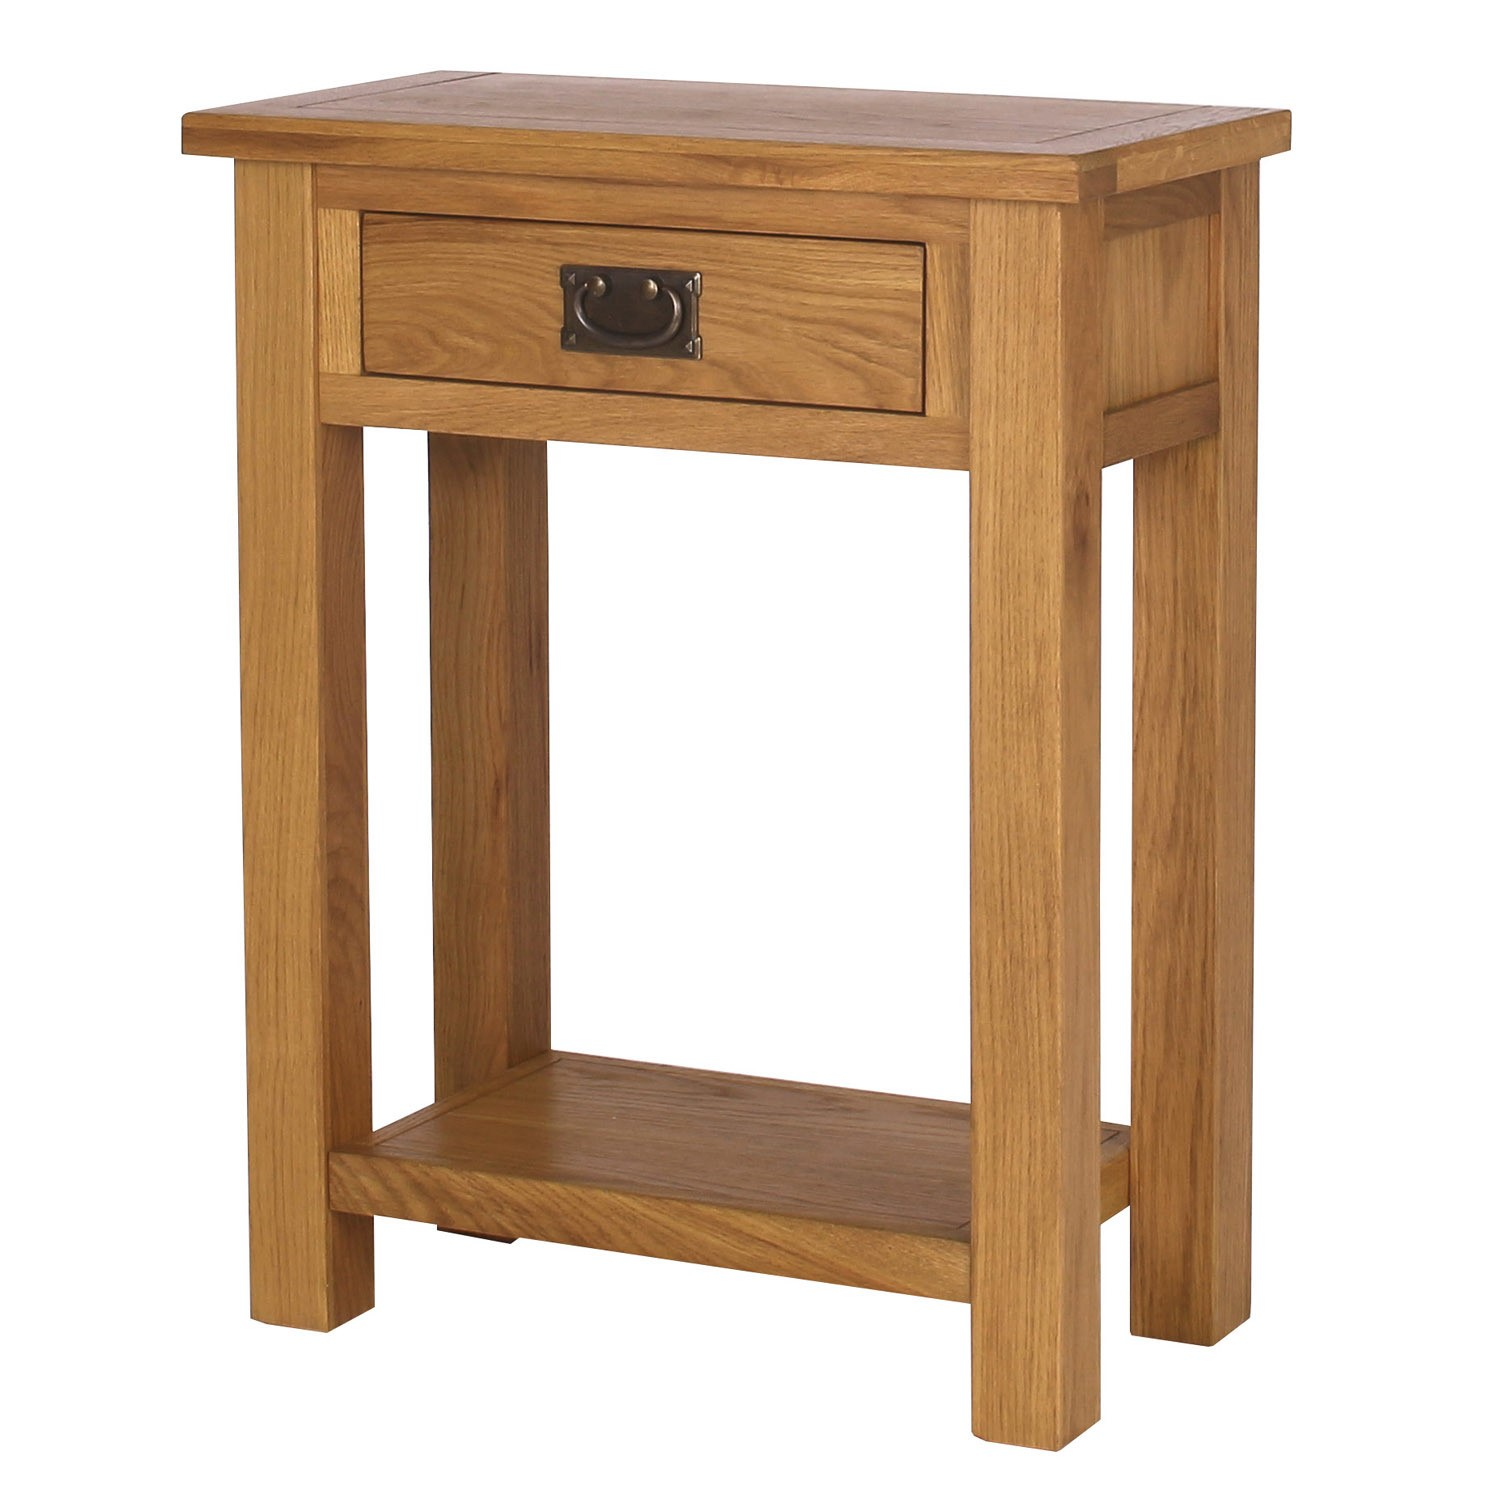 Solid oak narrow console table 1 drawer lower shelf picclick uk - Narrow console table canada ...